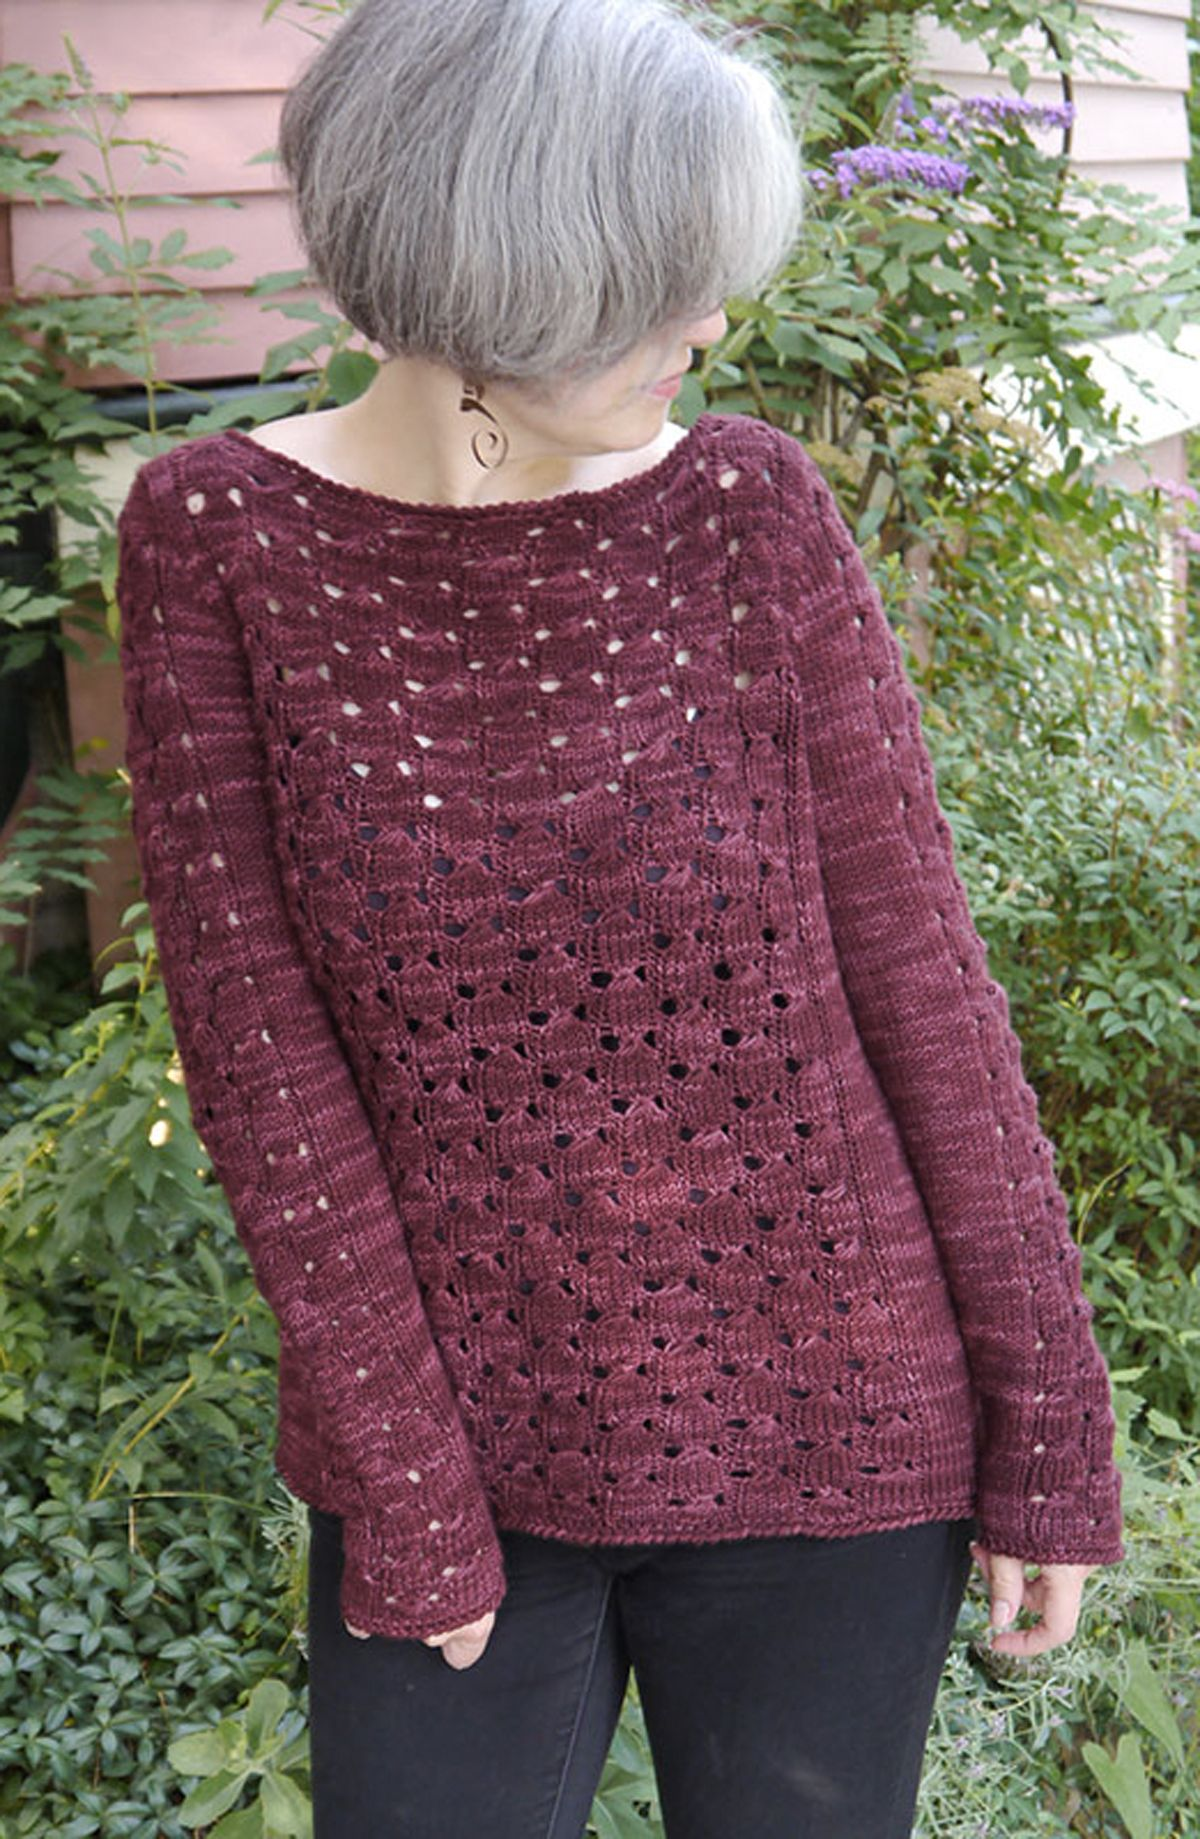 What A Pretty Lace Cluster Stitch In This Knitted Pullover